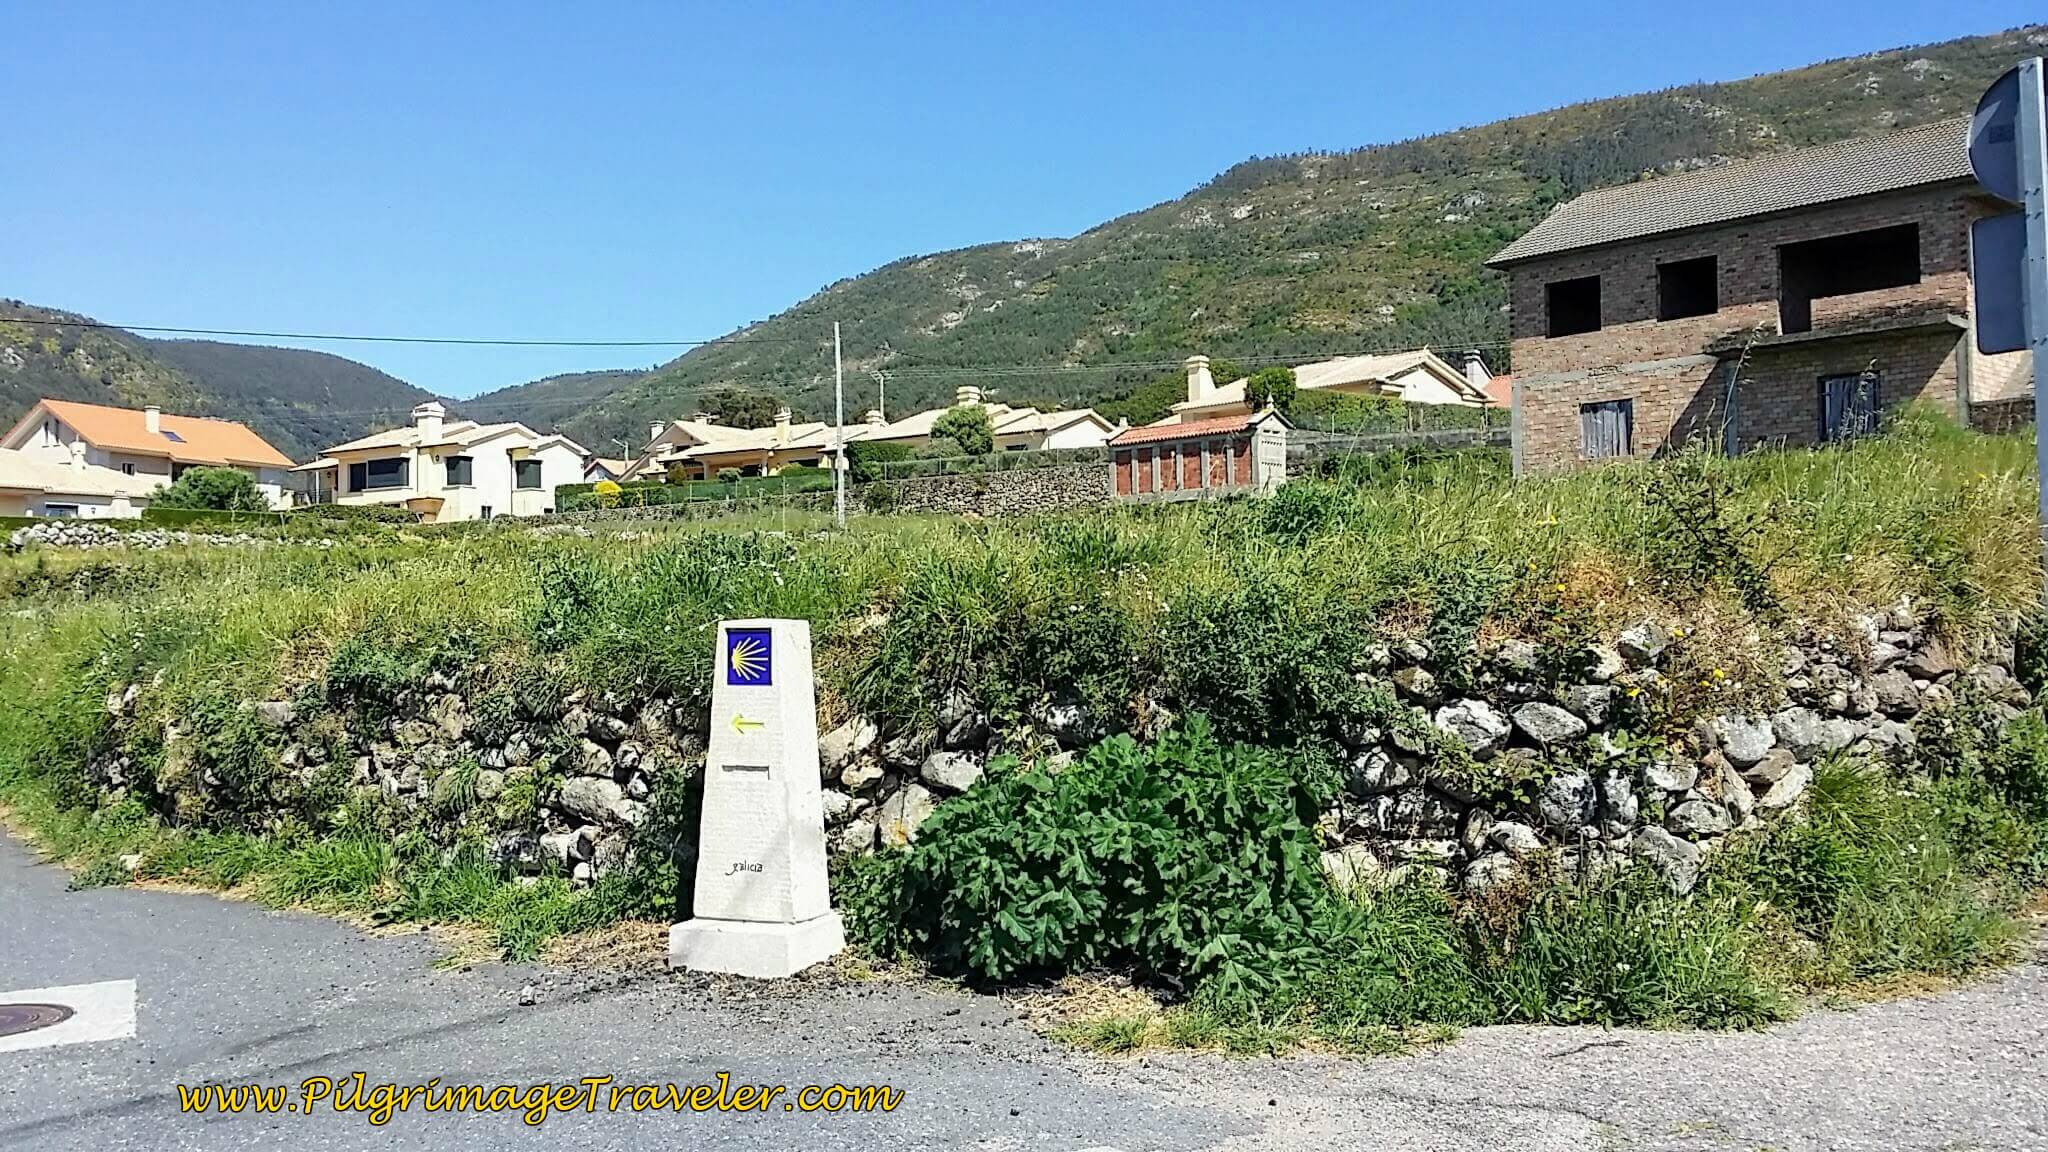 Our Camino Ends Here at this Waymark on day ninteen of the Portuguese Way